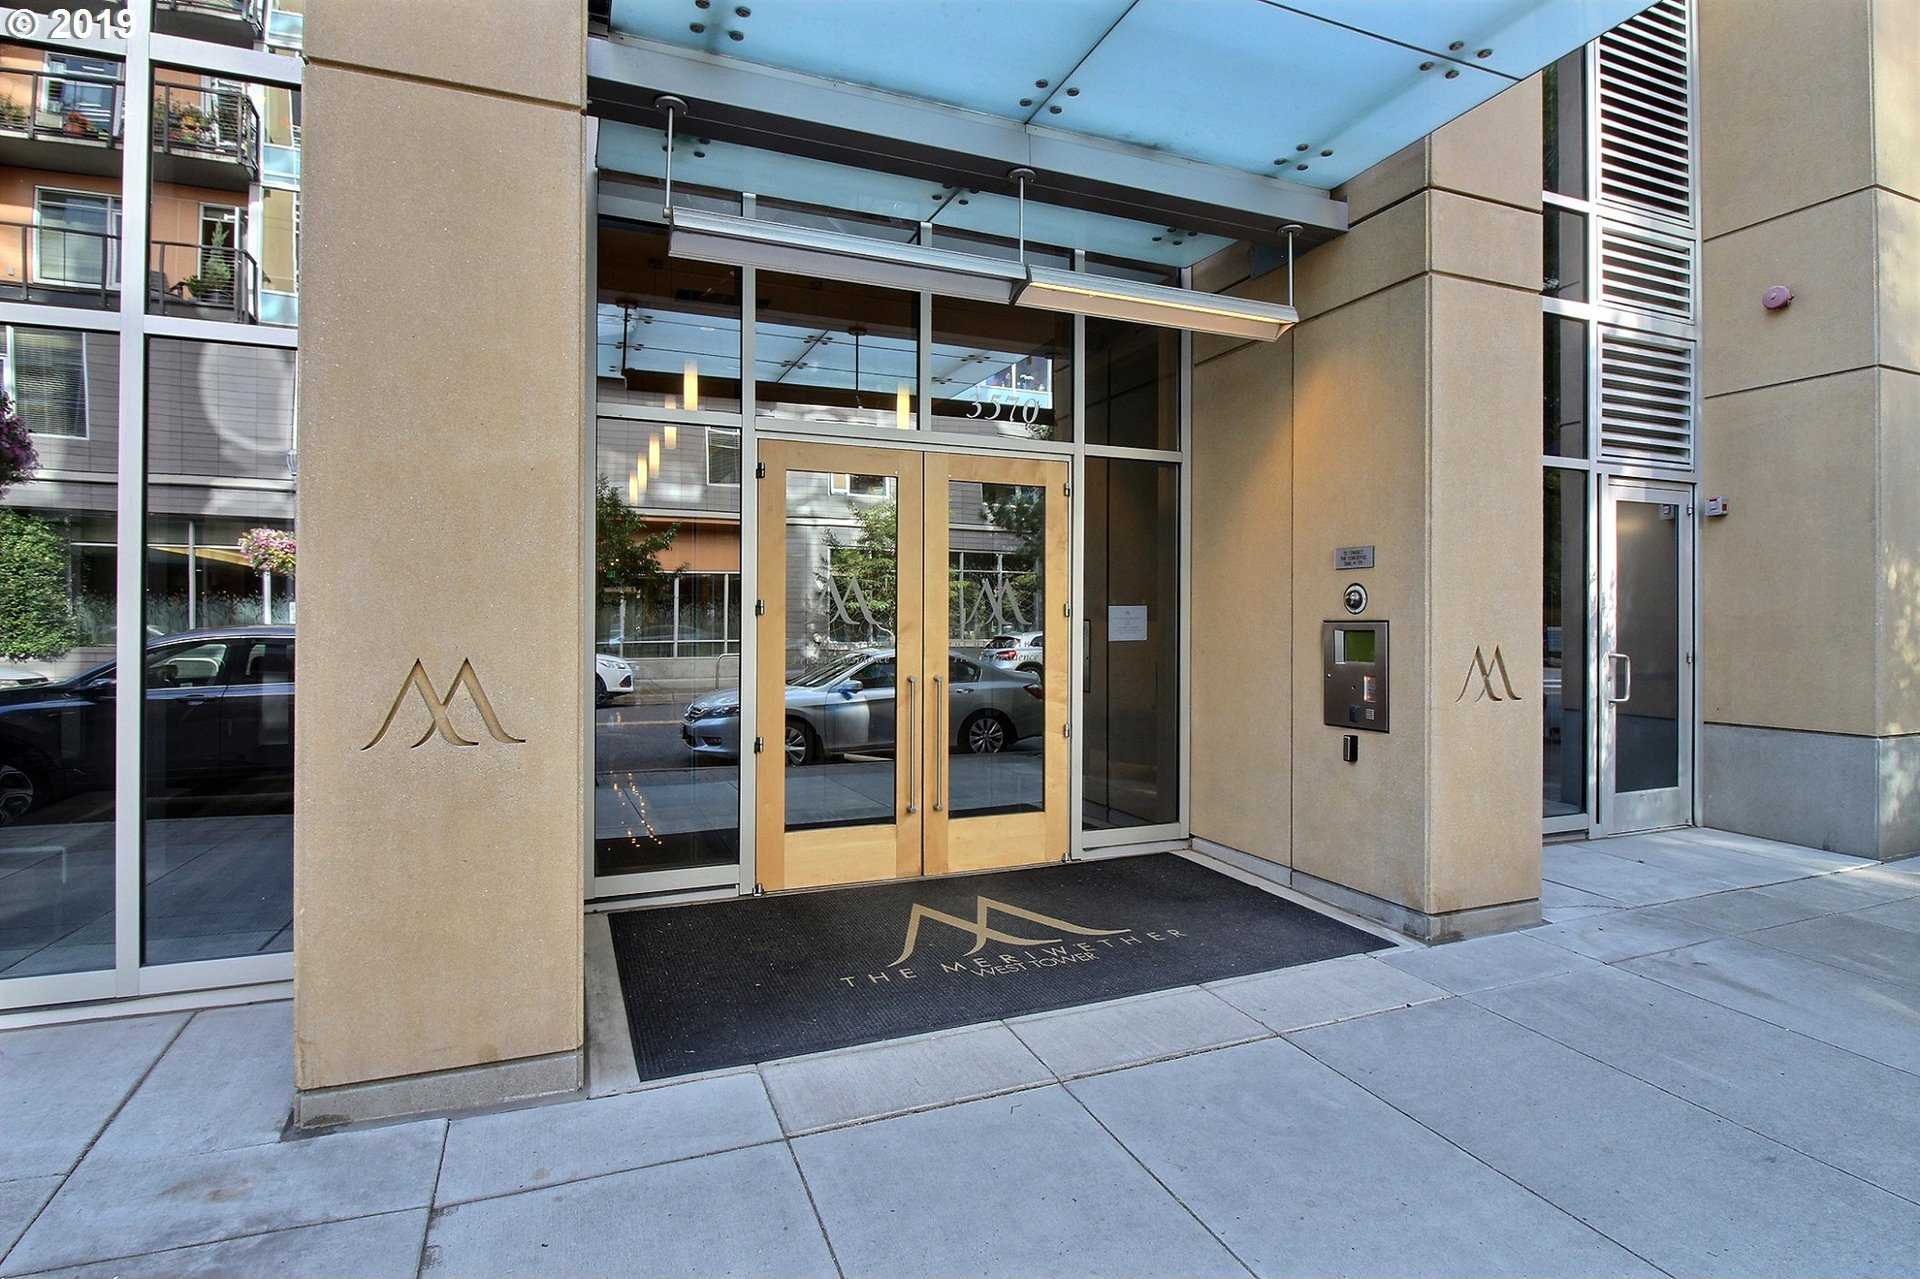 $414,900 - 1Br/1Ba -  for Sale in South Waterfront / Meriwether, Portland